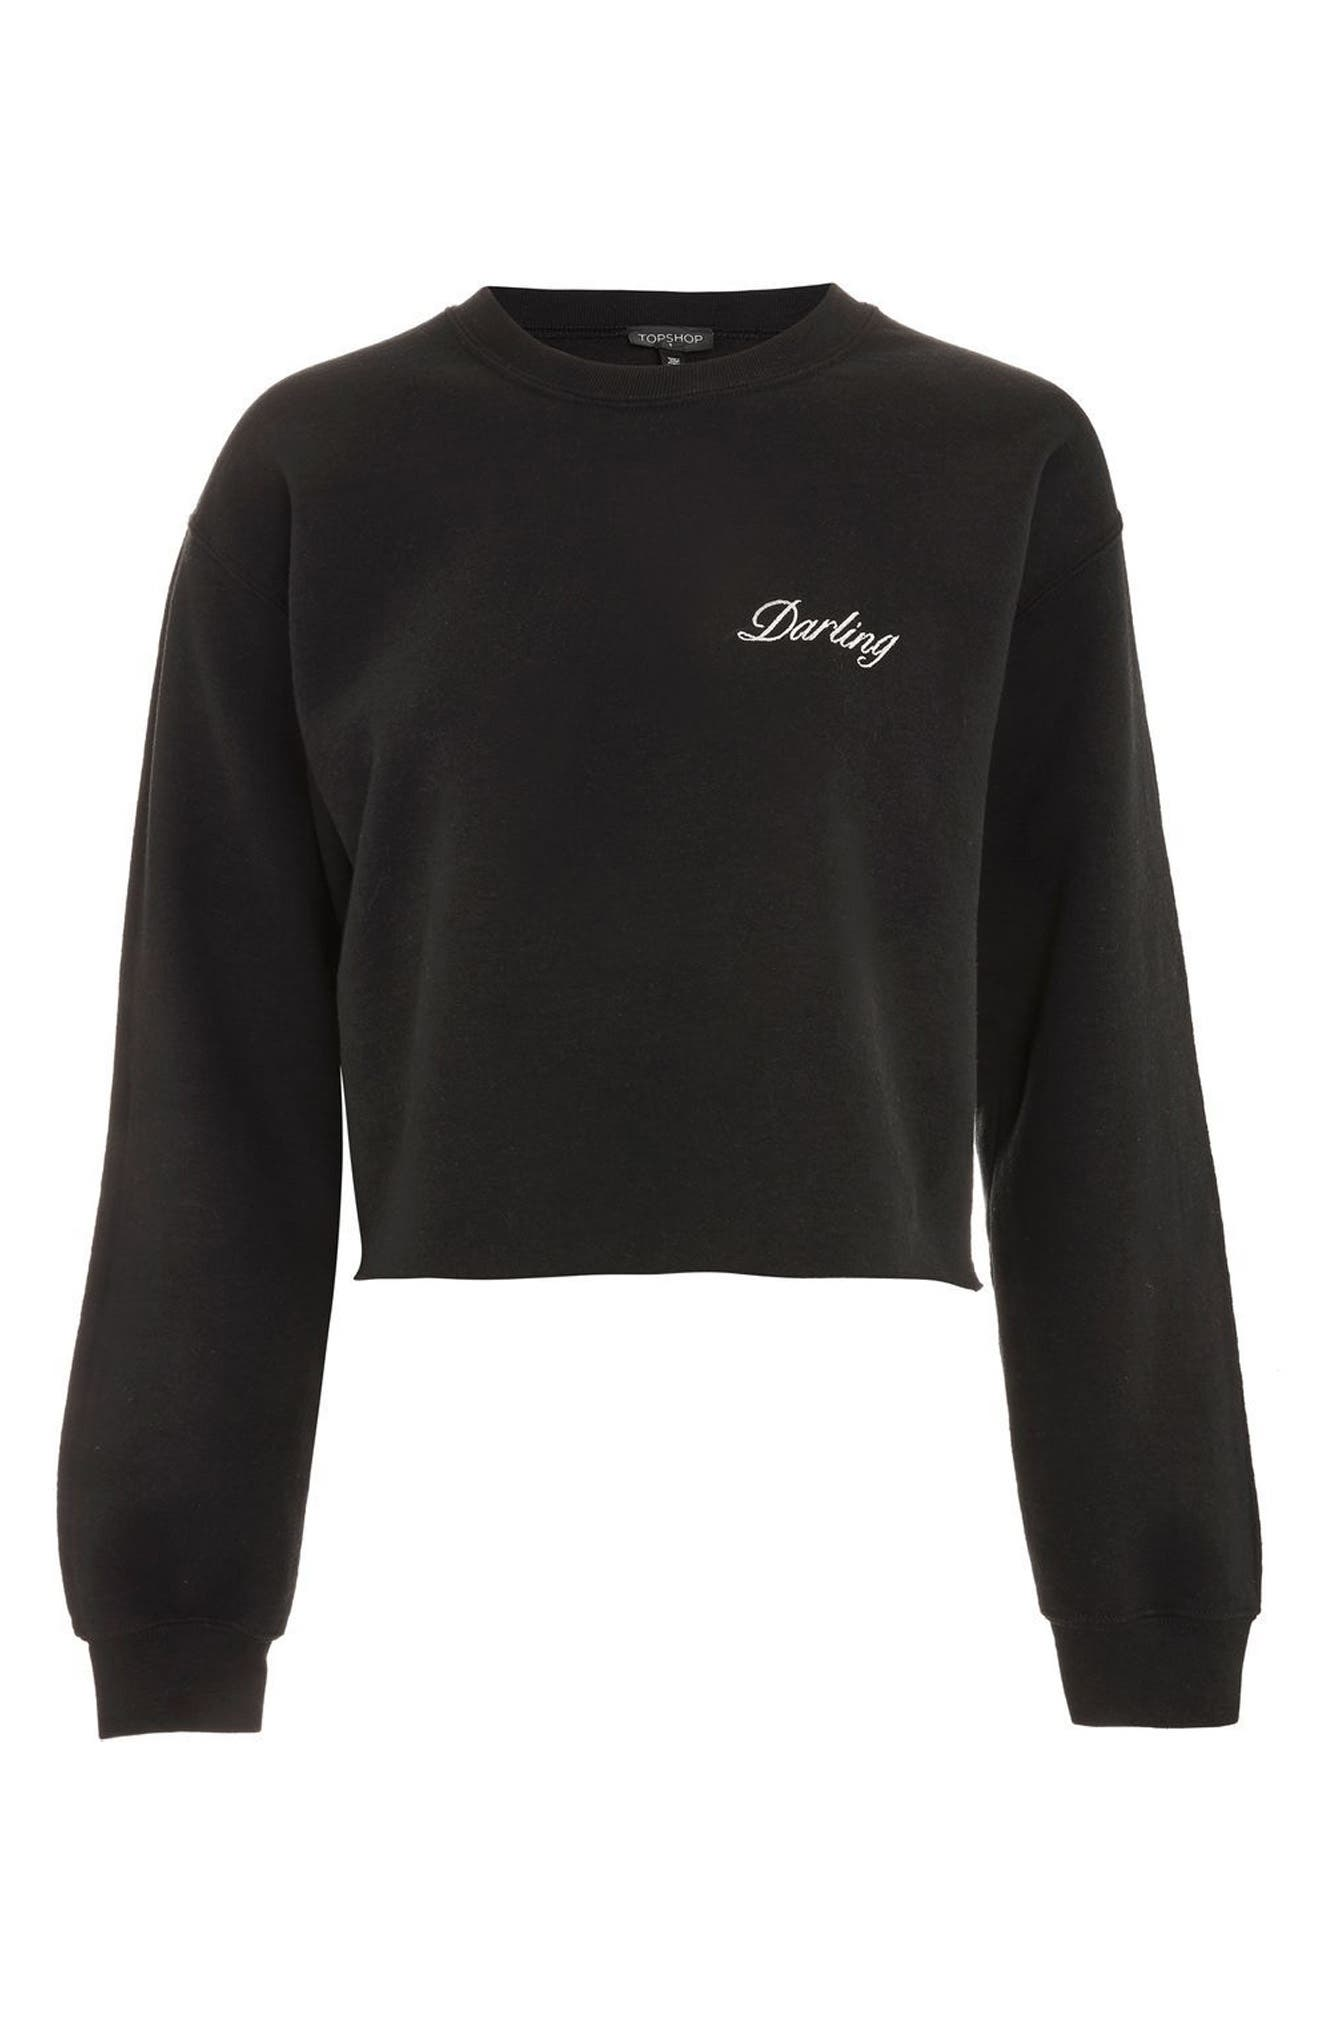 Alternate Image 3  - Topshop Darling Slogan Crop Sweatshirt